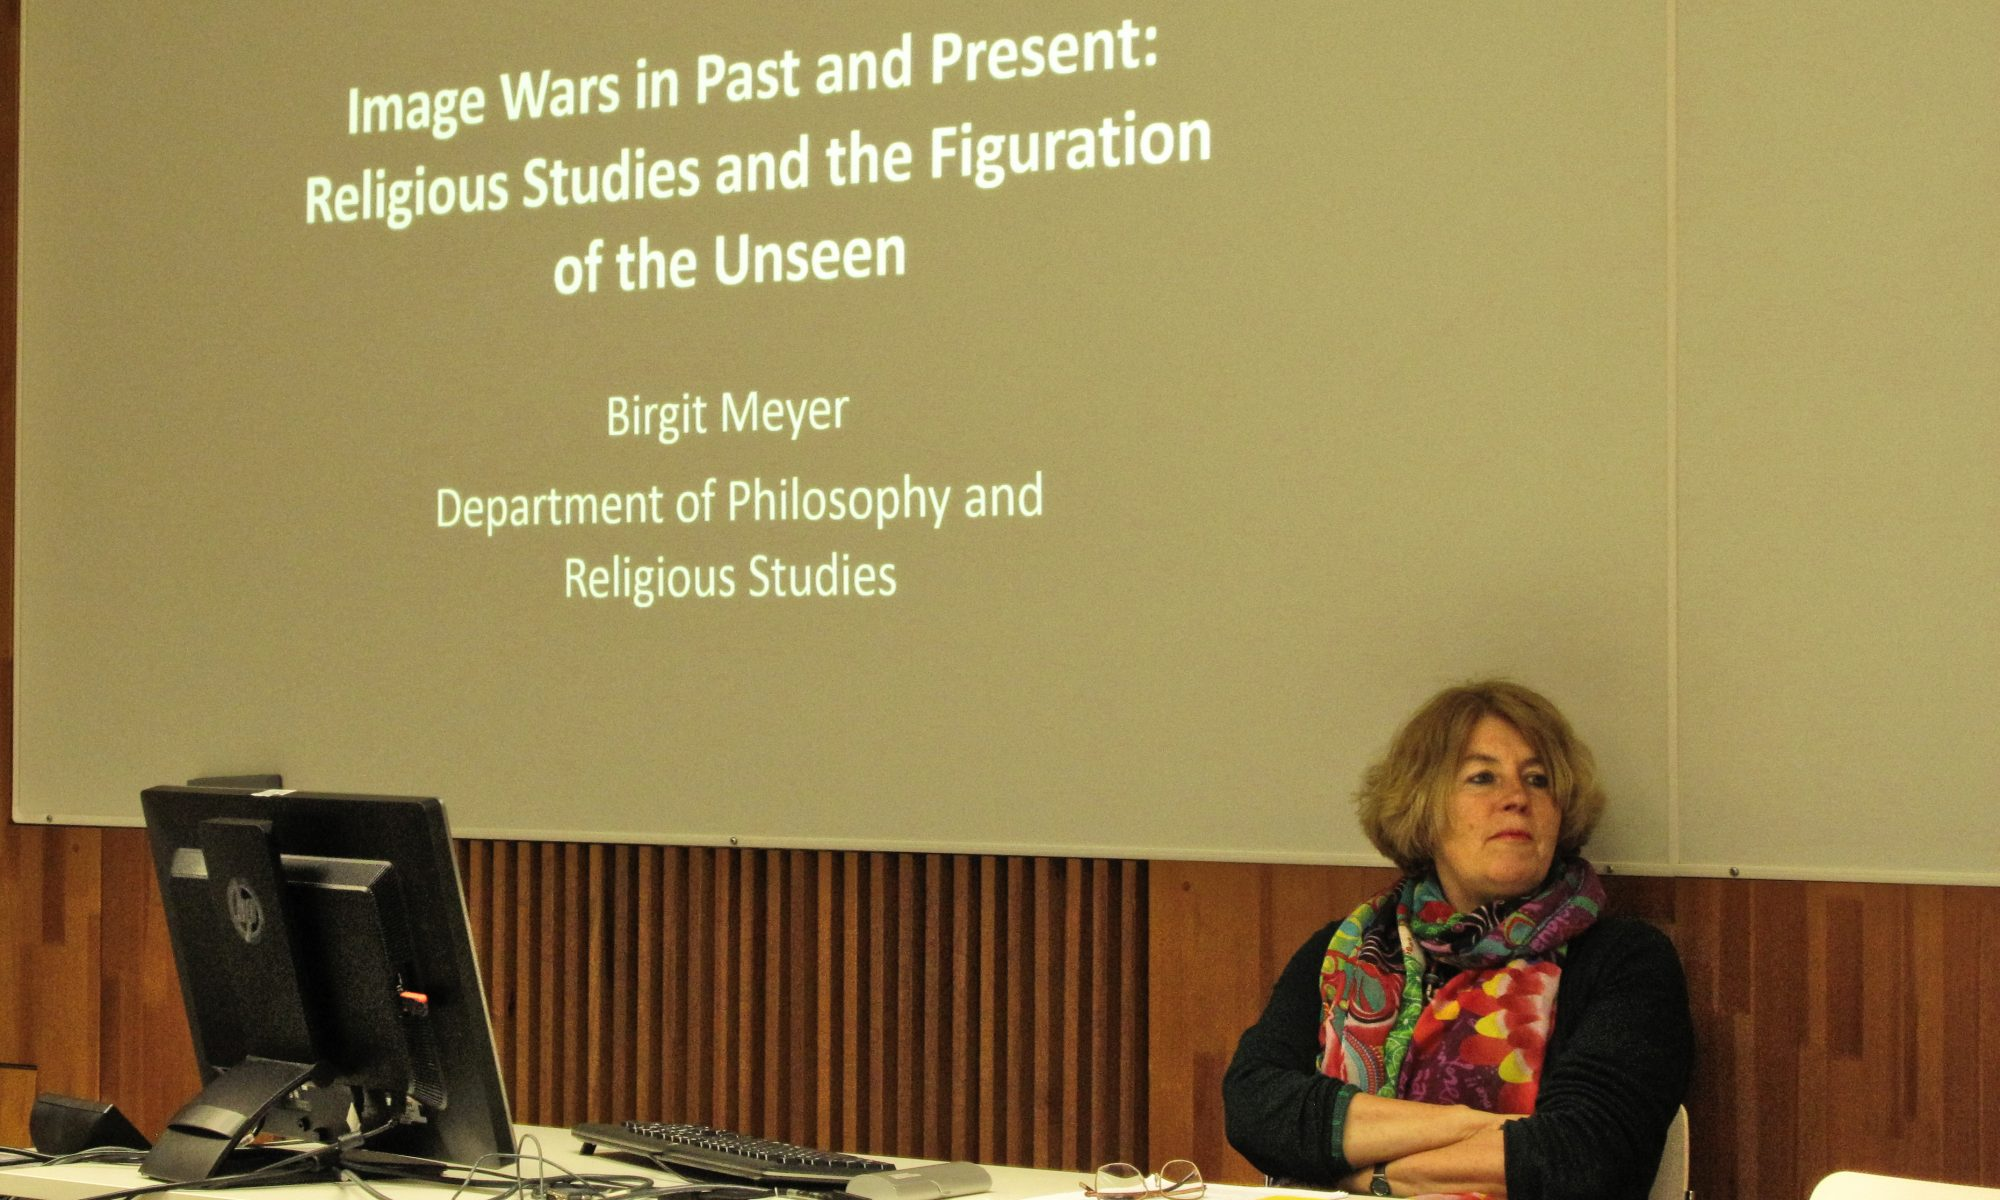 Image Wars in Past and Present: Religious Studies and the Figuration of the Unseen